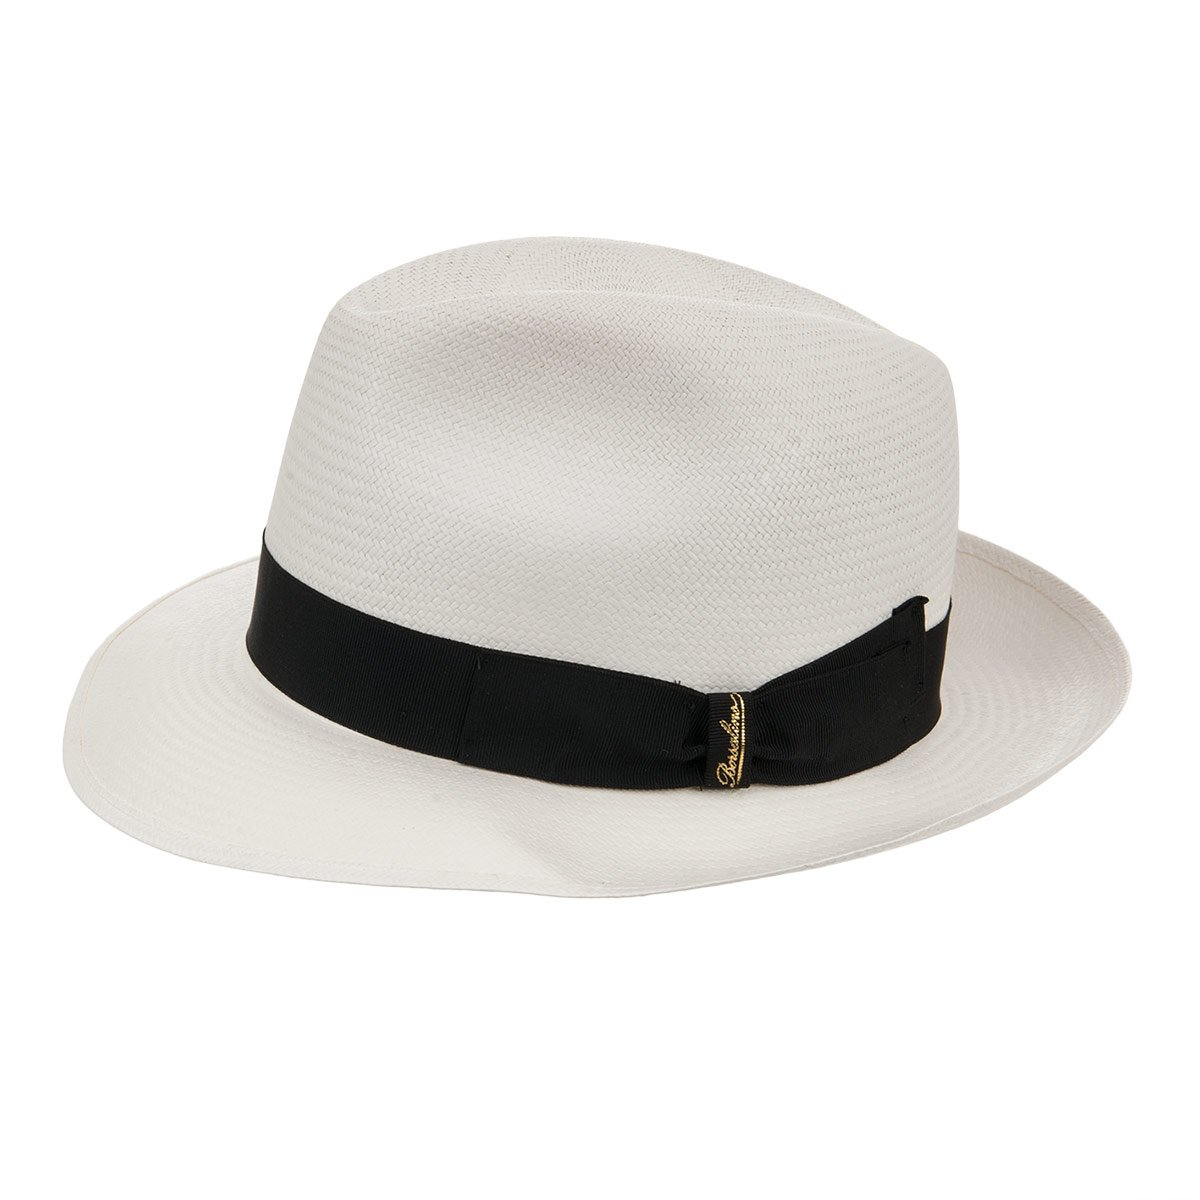 Galleria baby panama hat all'Ingrosso - Acquista a …